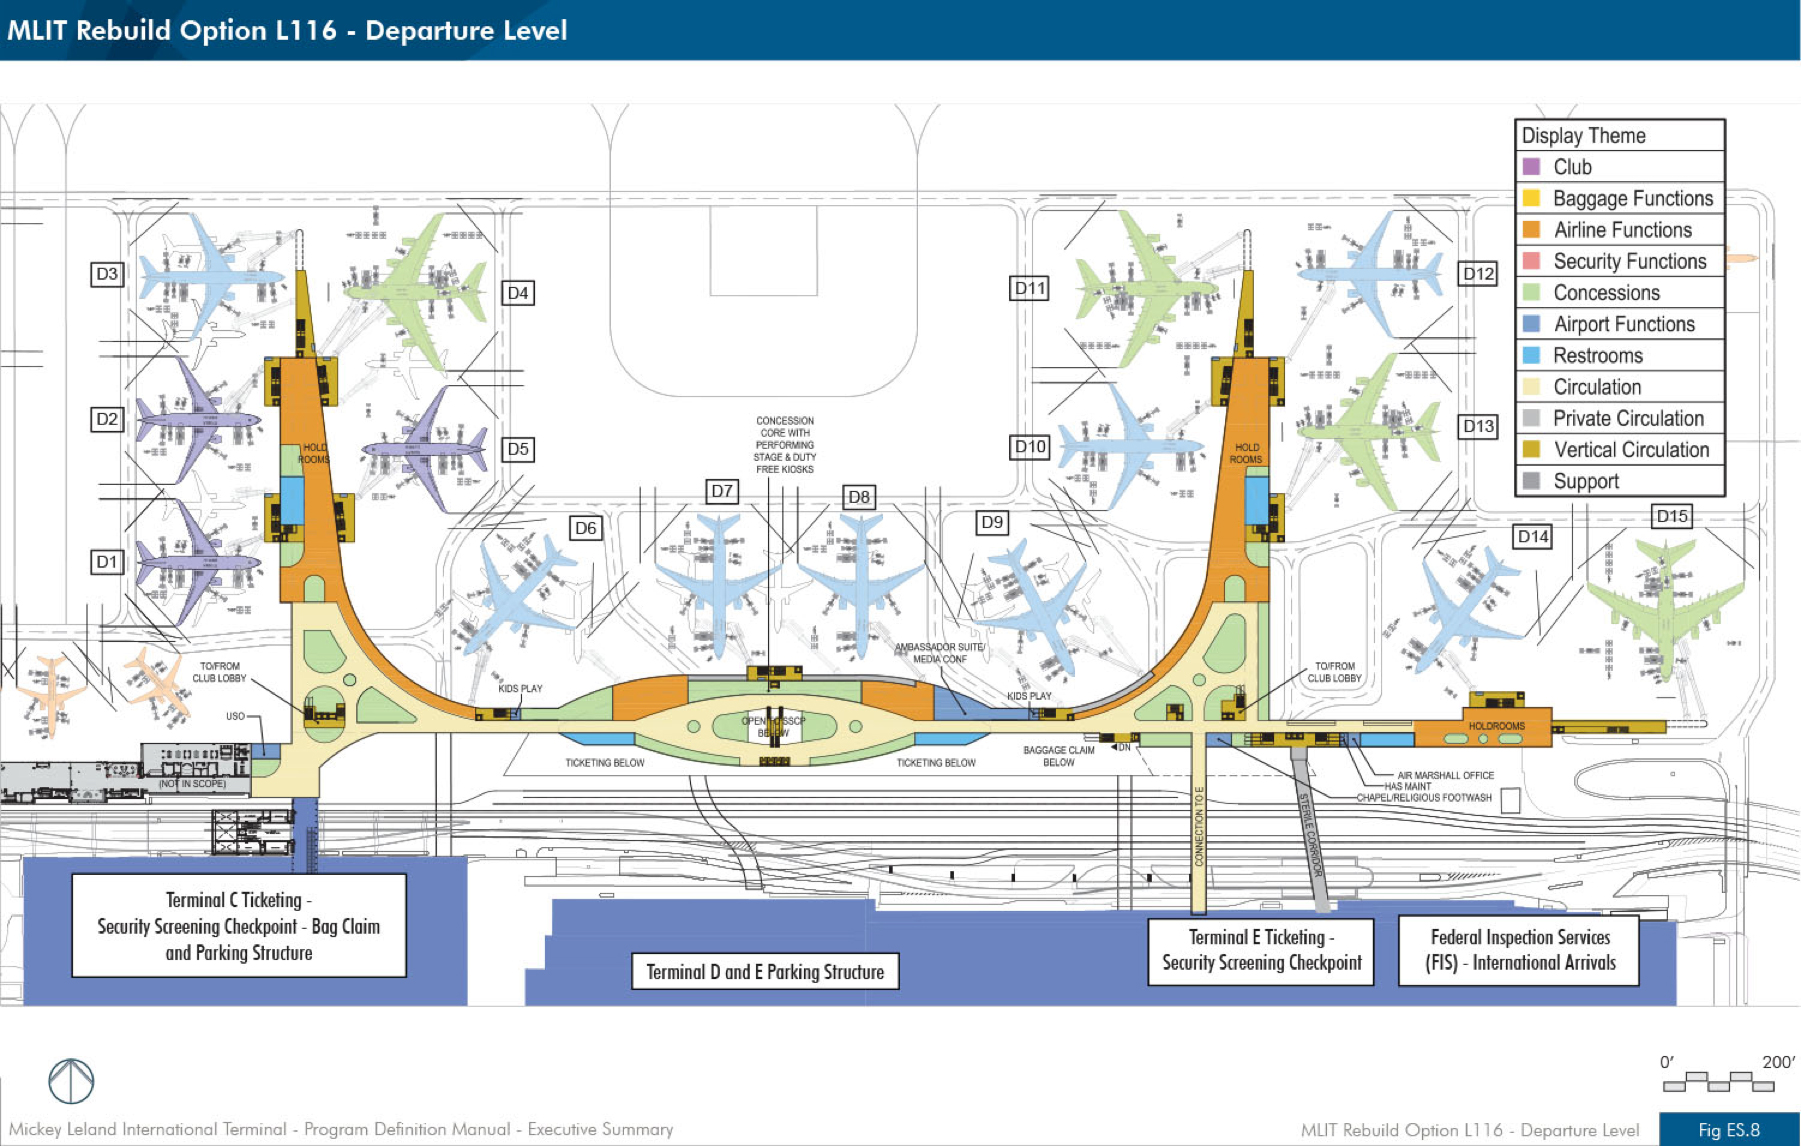 George bush intercontinental airport iah mickey leland international terminal program Airport planning and design course